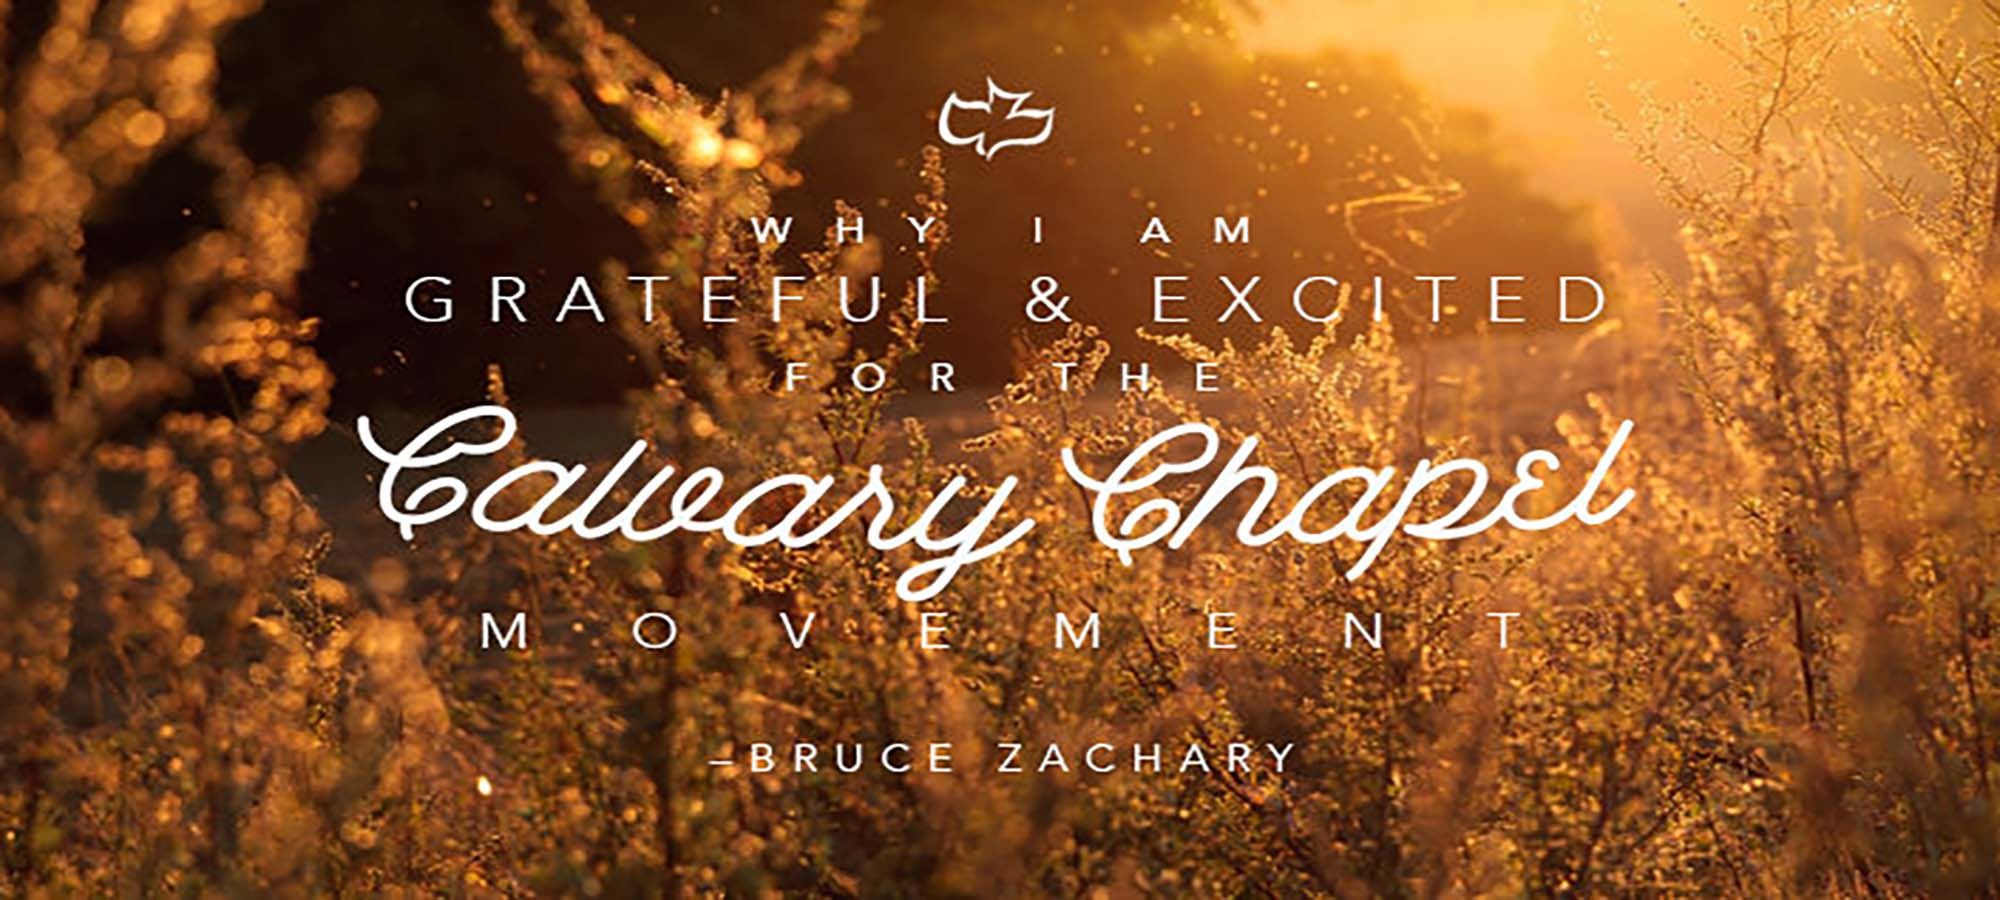 Why I Am Grateful & Excited for the Calvary Chapel Movement